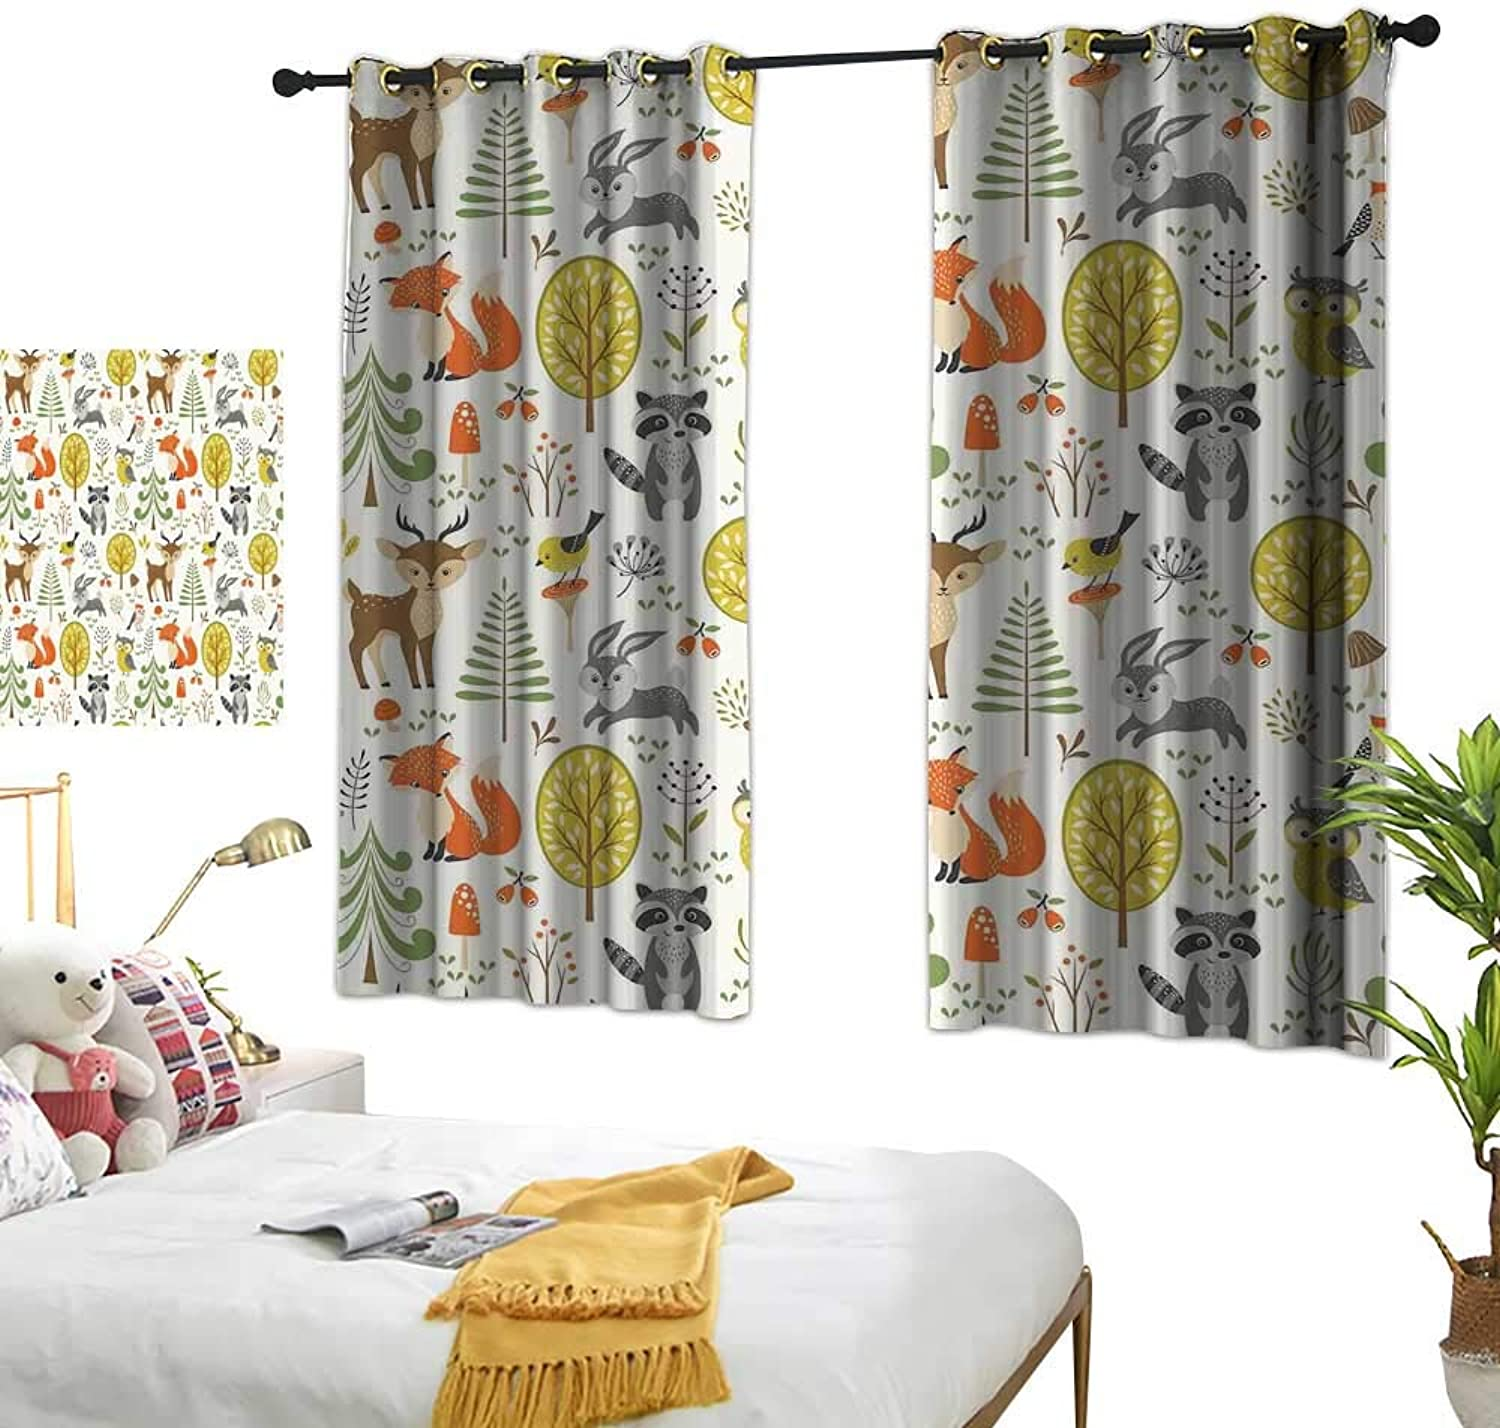 Anzhutwelve Grommet Top Drapes Kids,Woodland Forest Animals Trees Birds Owls Fox Bunny Deer Raccoon Mushroom Home and W55 x L39 Grommet Window Drapes